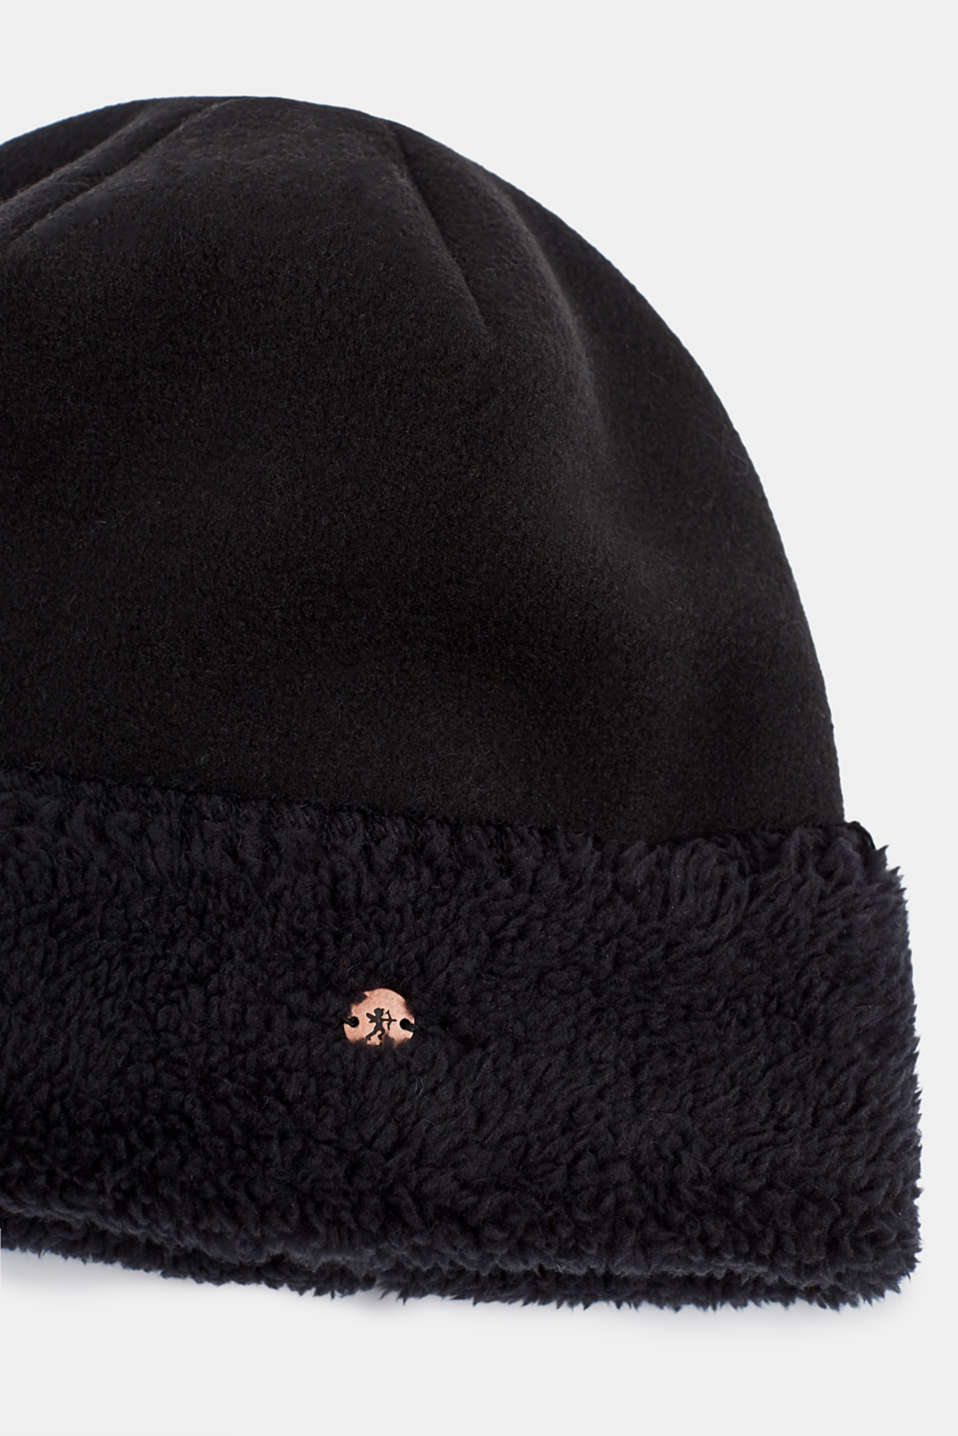 Hats/Caps, BLACK, detail image number 1